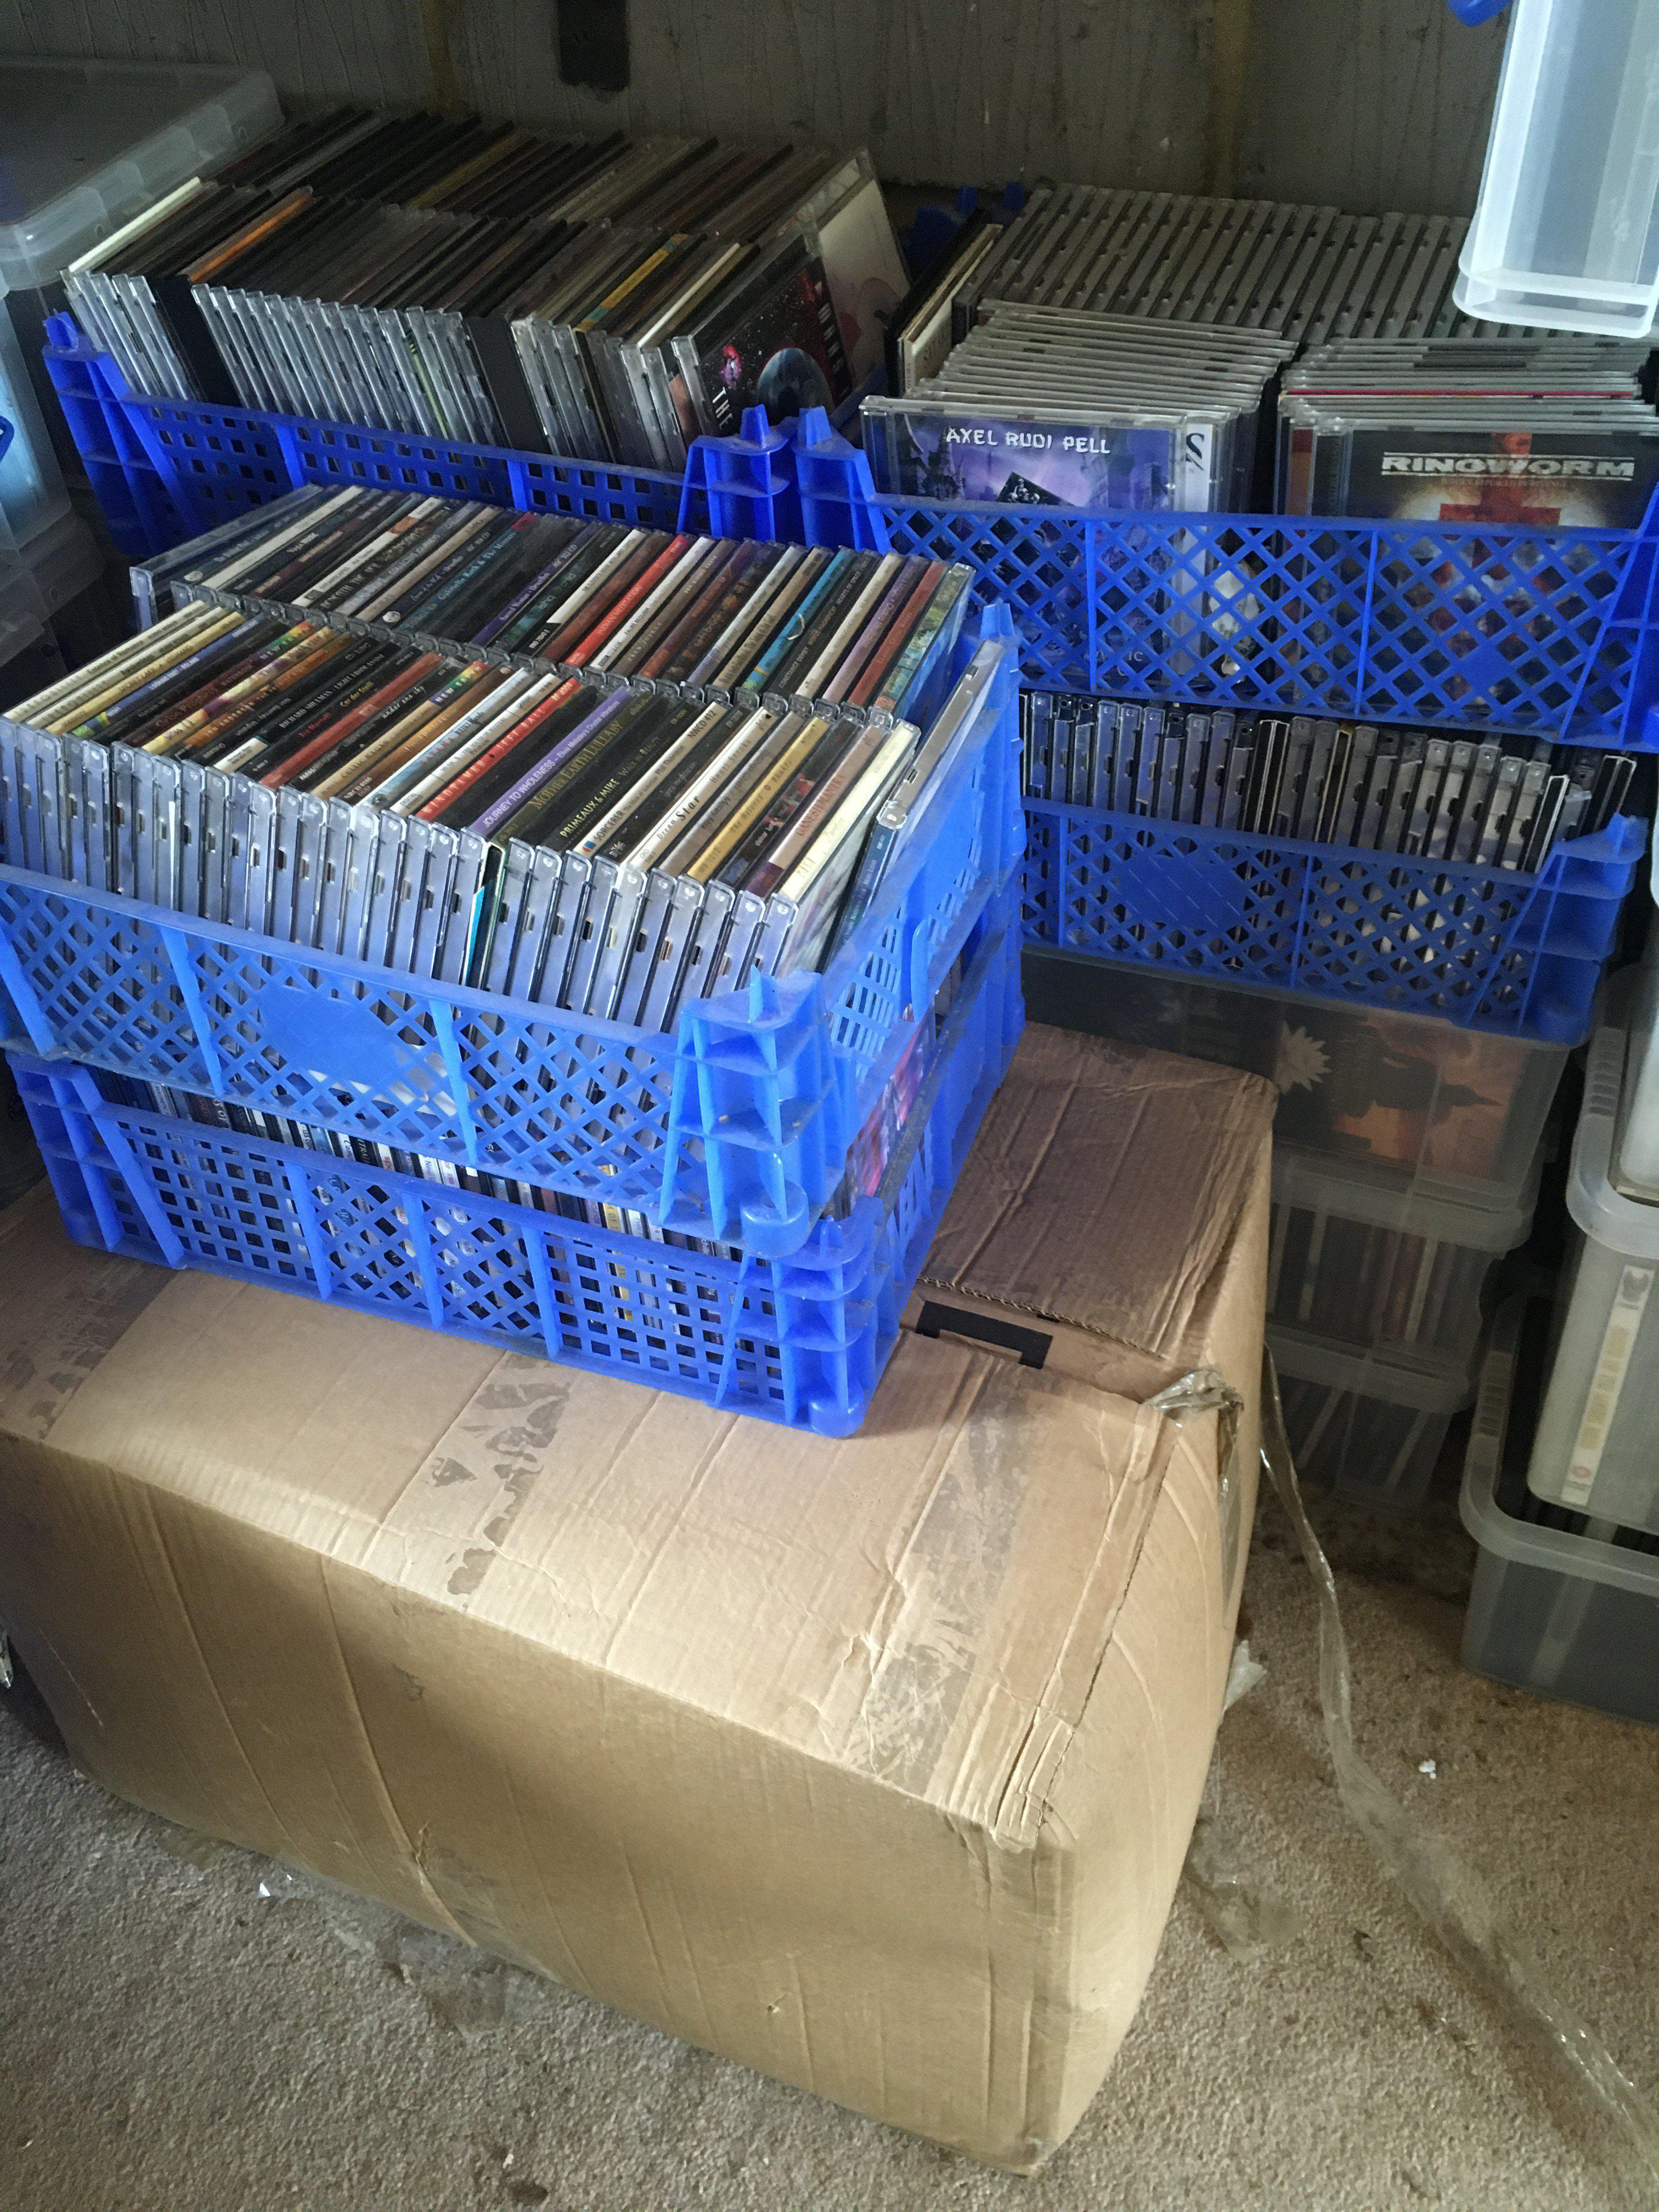 A collection of approx 1000 CDs in crates and boxe